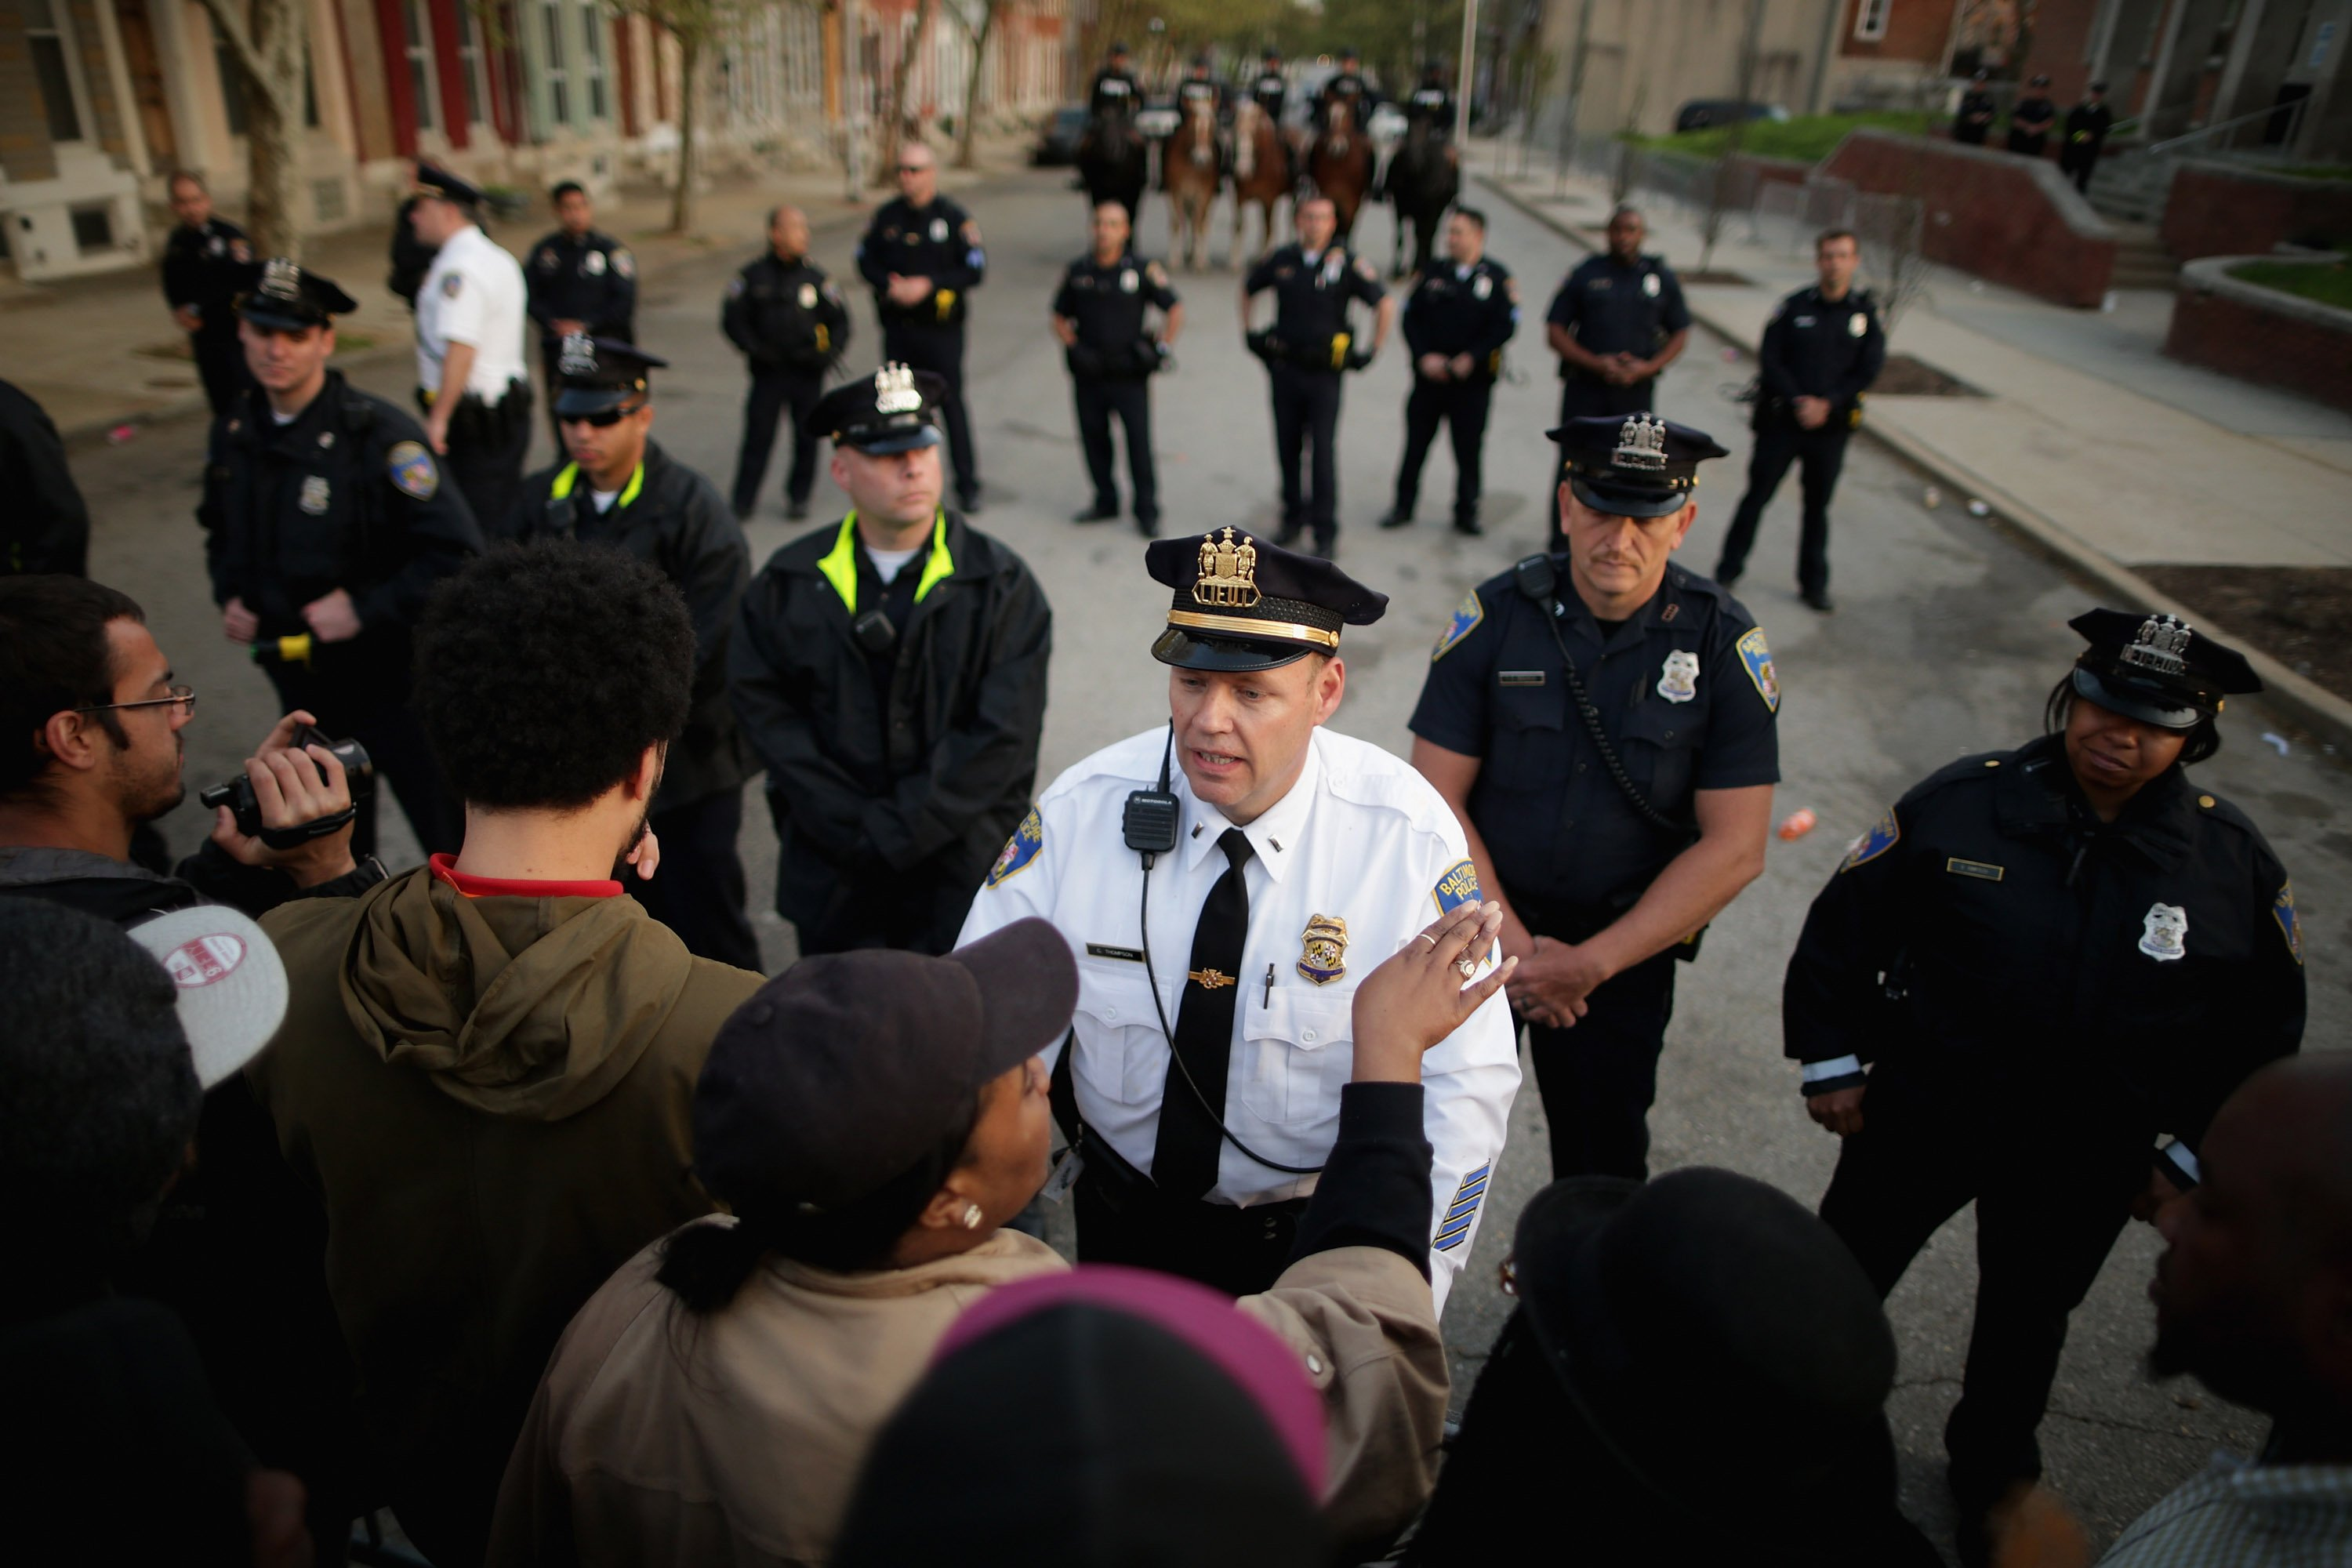 Protesters argue with Baltimore Police officers outside the Western District police station in Baltimore on April 22, 2015.